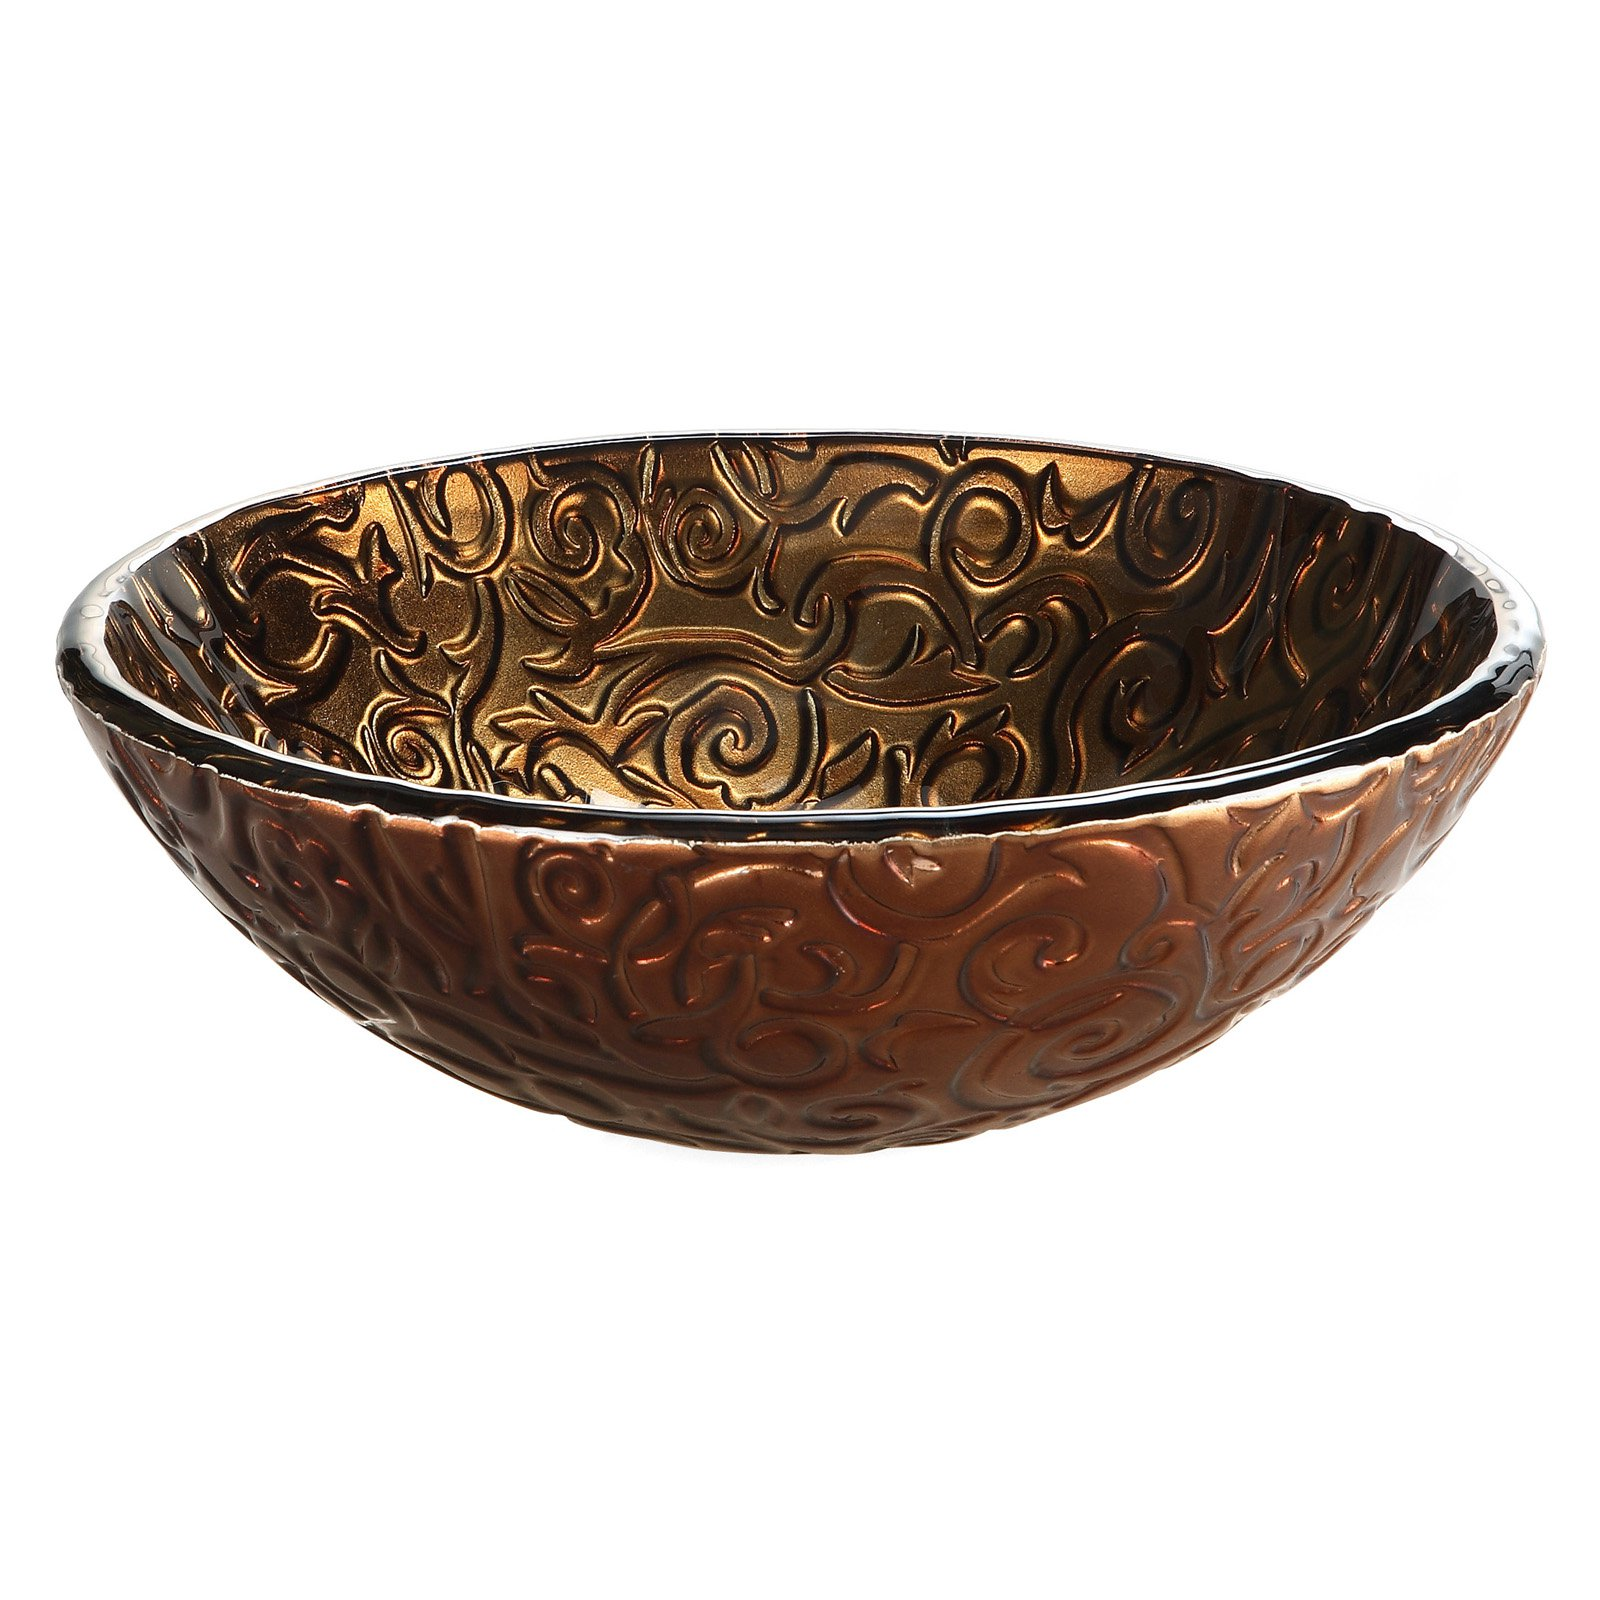 Xylem RVE165 Reflex Round Glass Vessel Sink - Metallic Brown Copper Vine